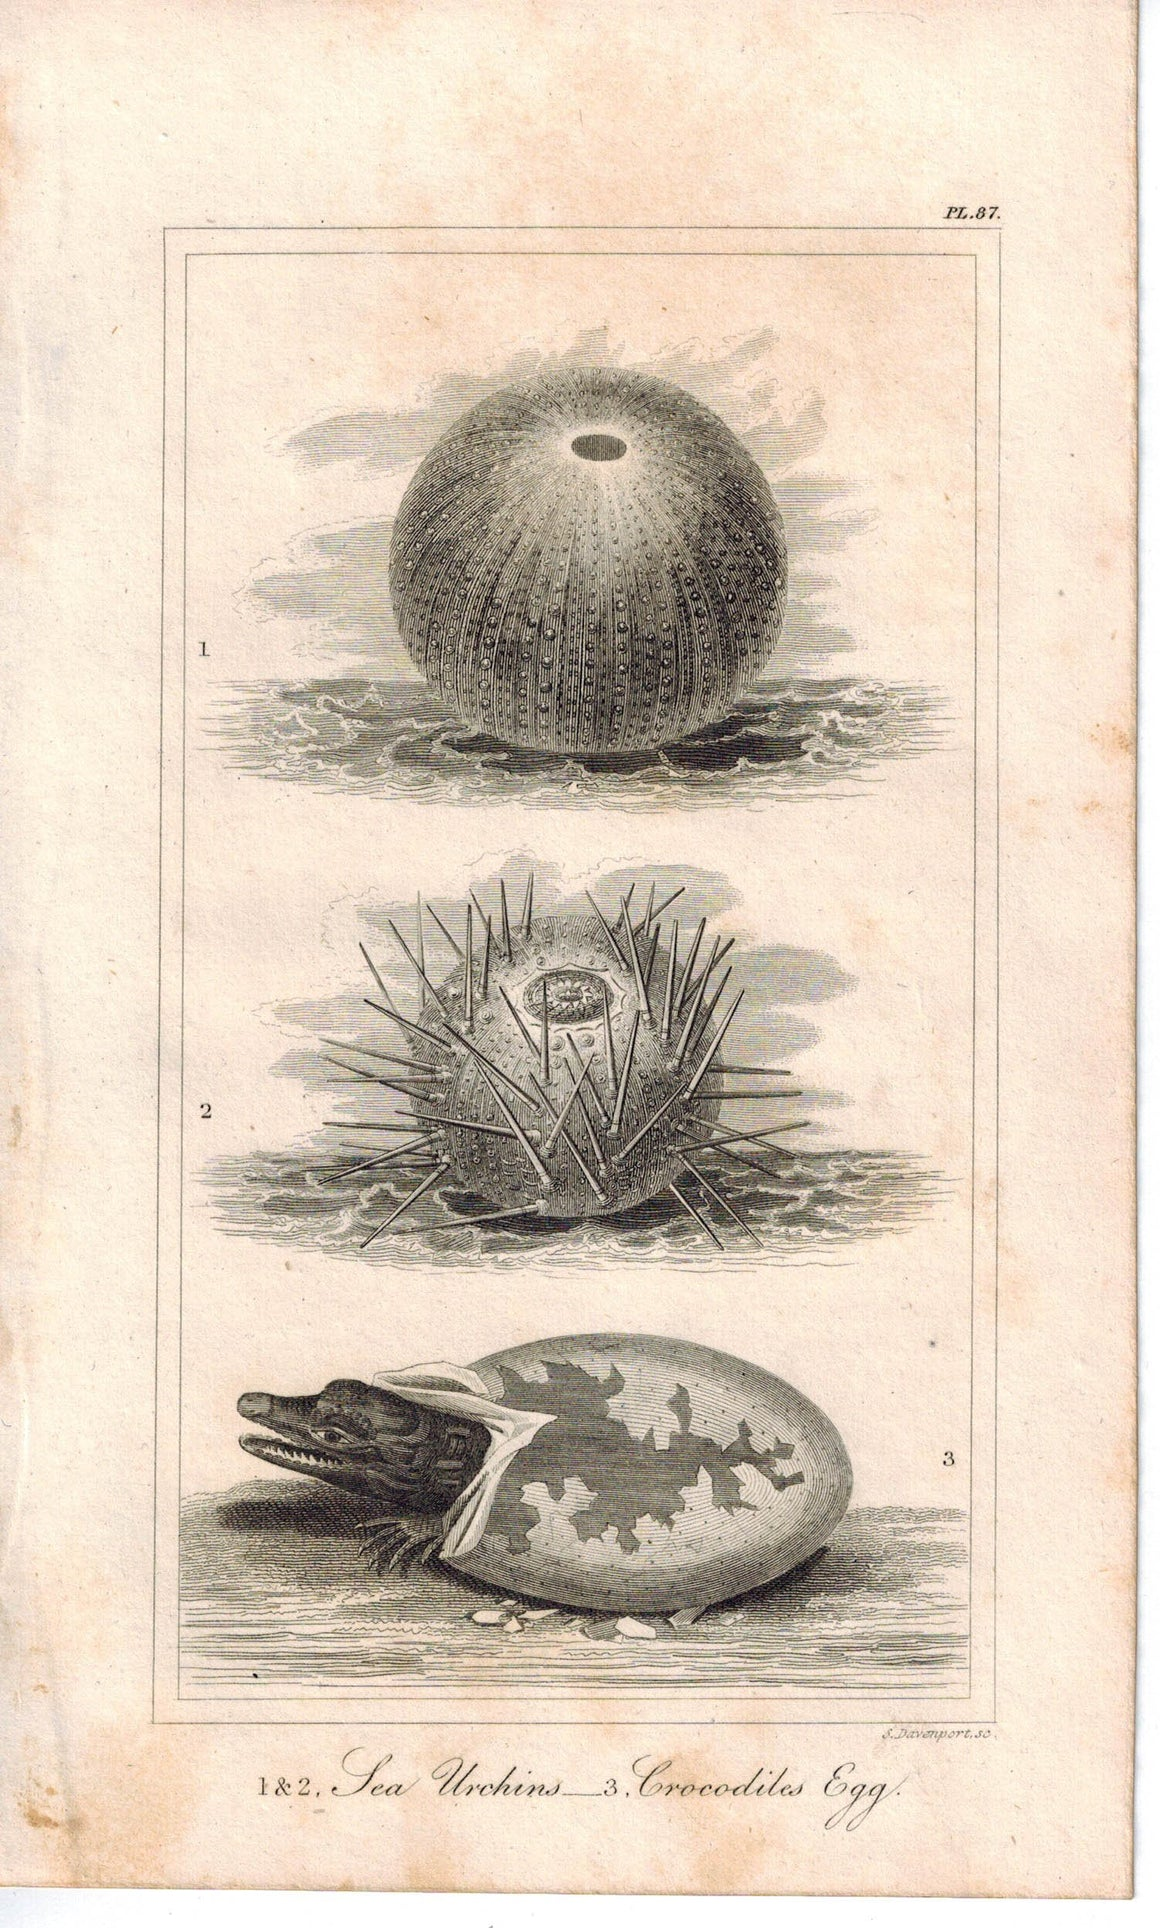 Sea Urchins Crocodiles Hatching Egg 1821 Antique Engraved Print Davenport